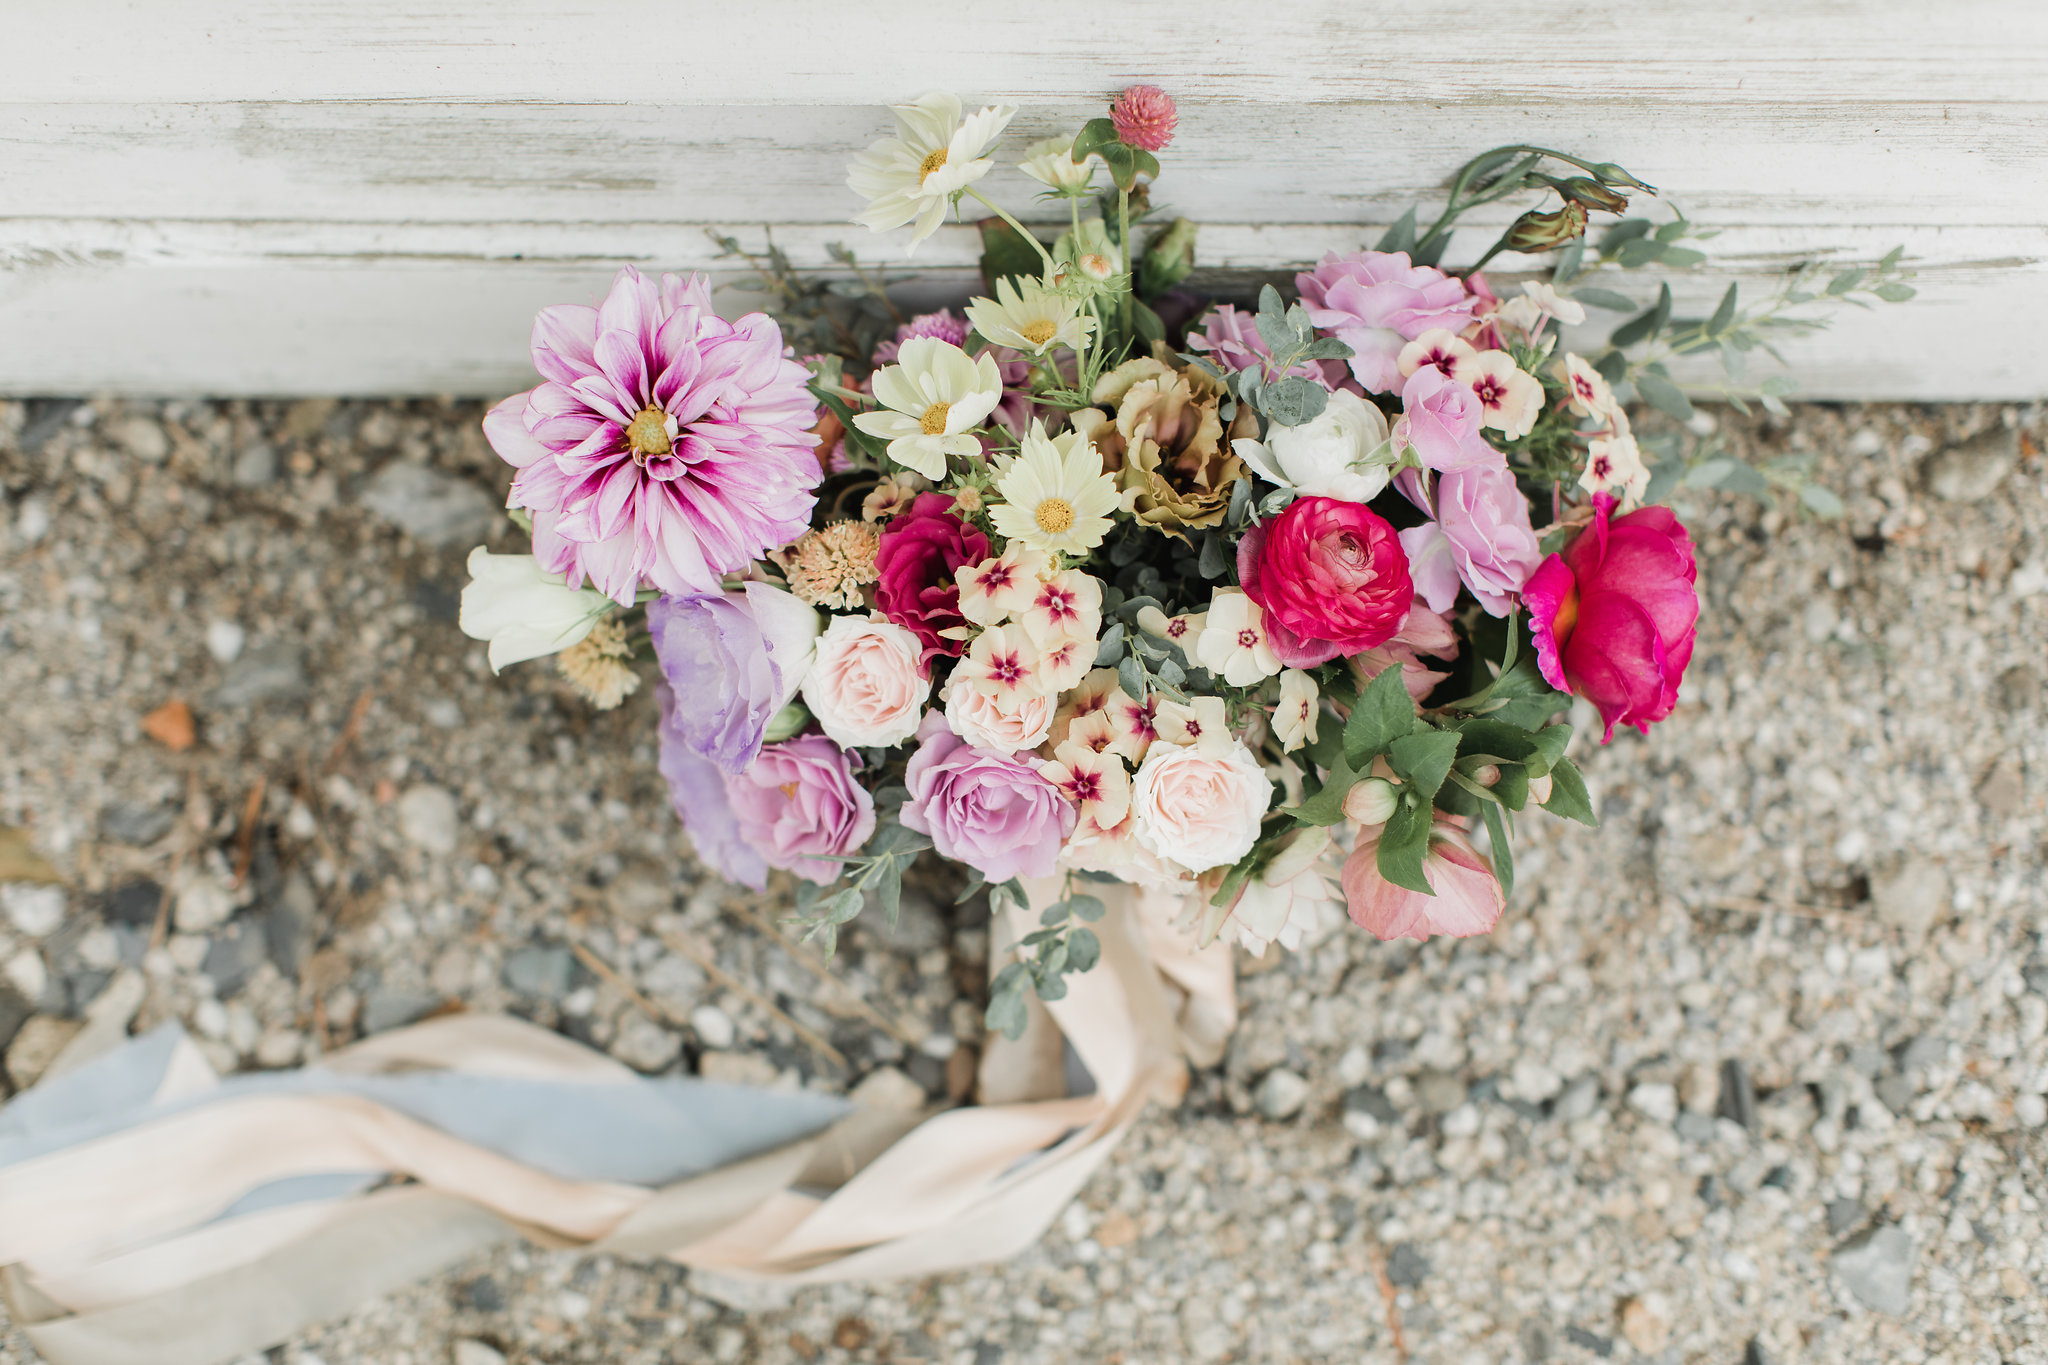 Watershed-Floral-Bridal-Bouquet-Shady-Lane-Farm-Maine-Barn-Wedding-45.jpg